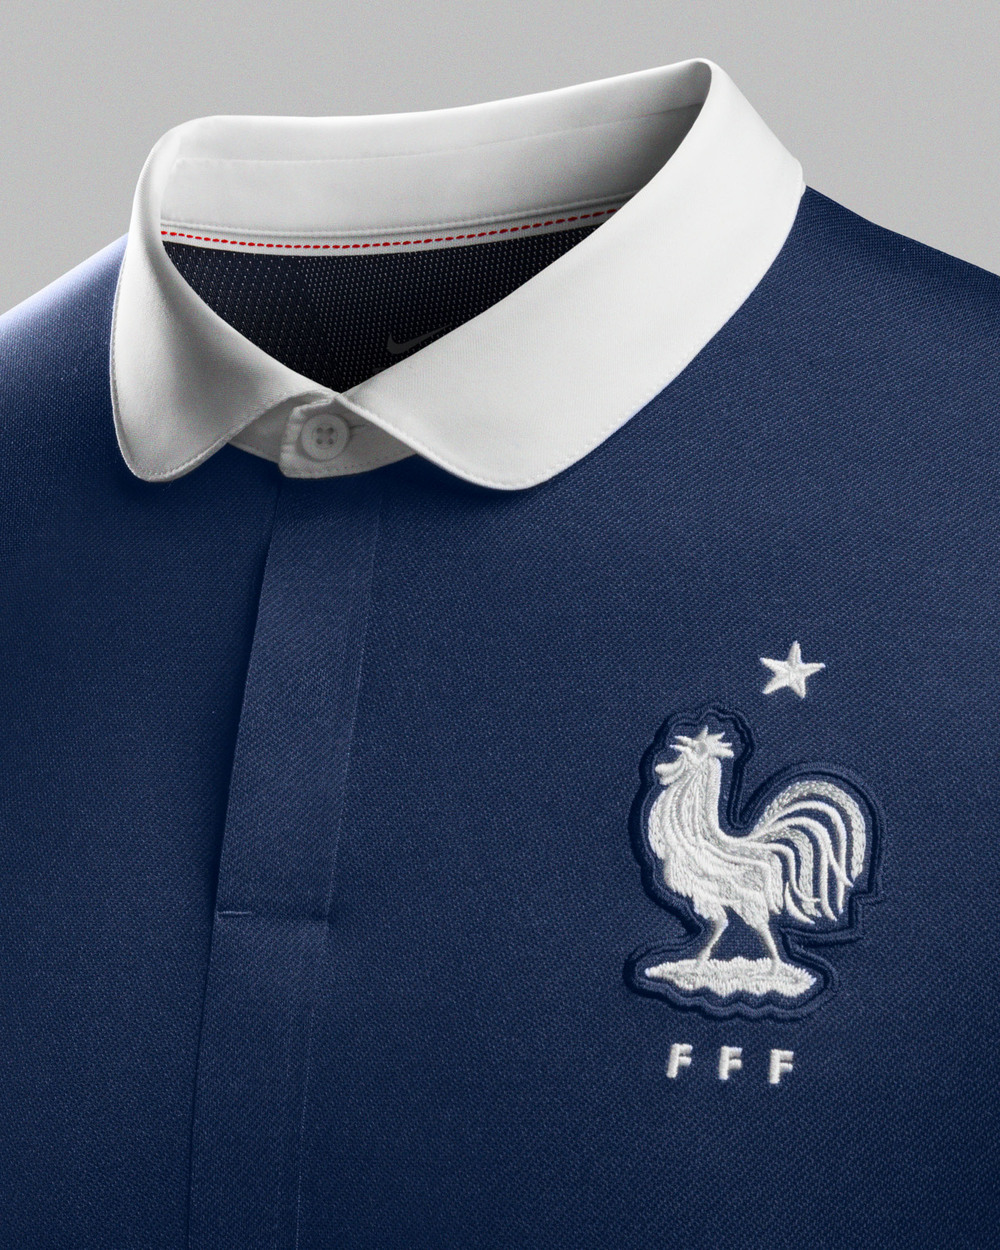 FRANCE_HOME_BADGECOLLAR_CROP_MEDRES_REVISED_copy_original.jpg